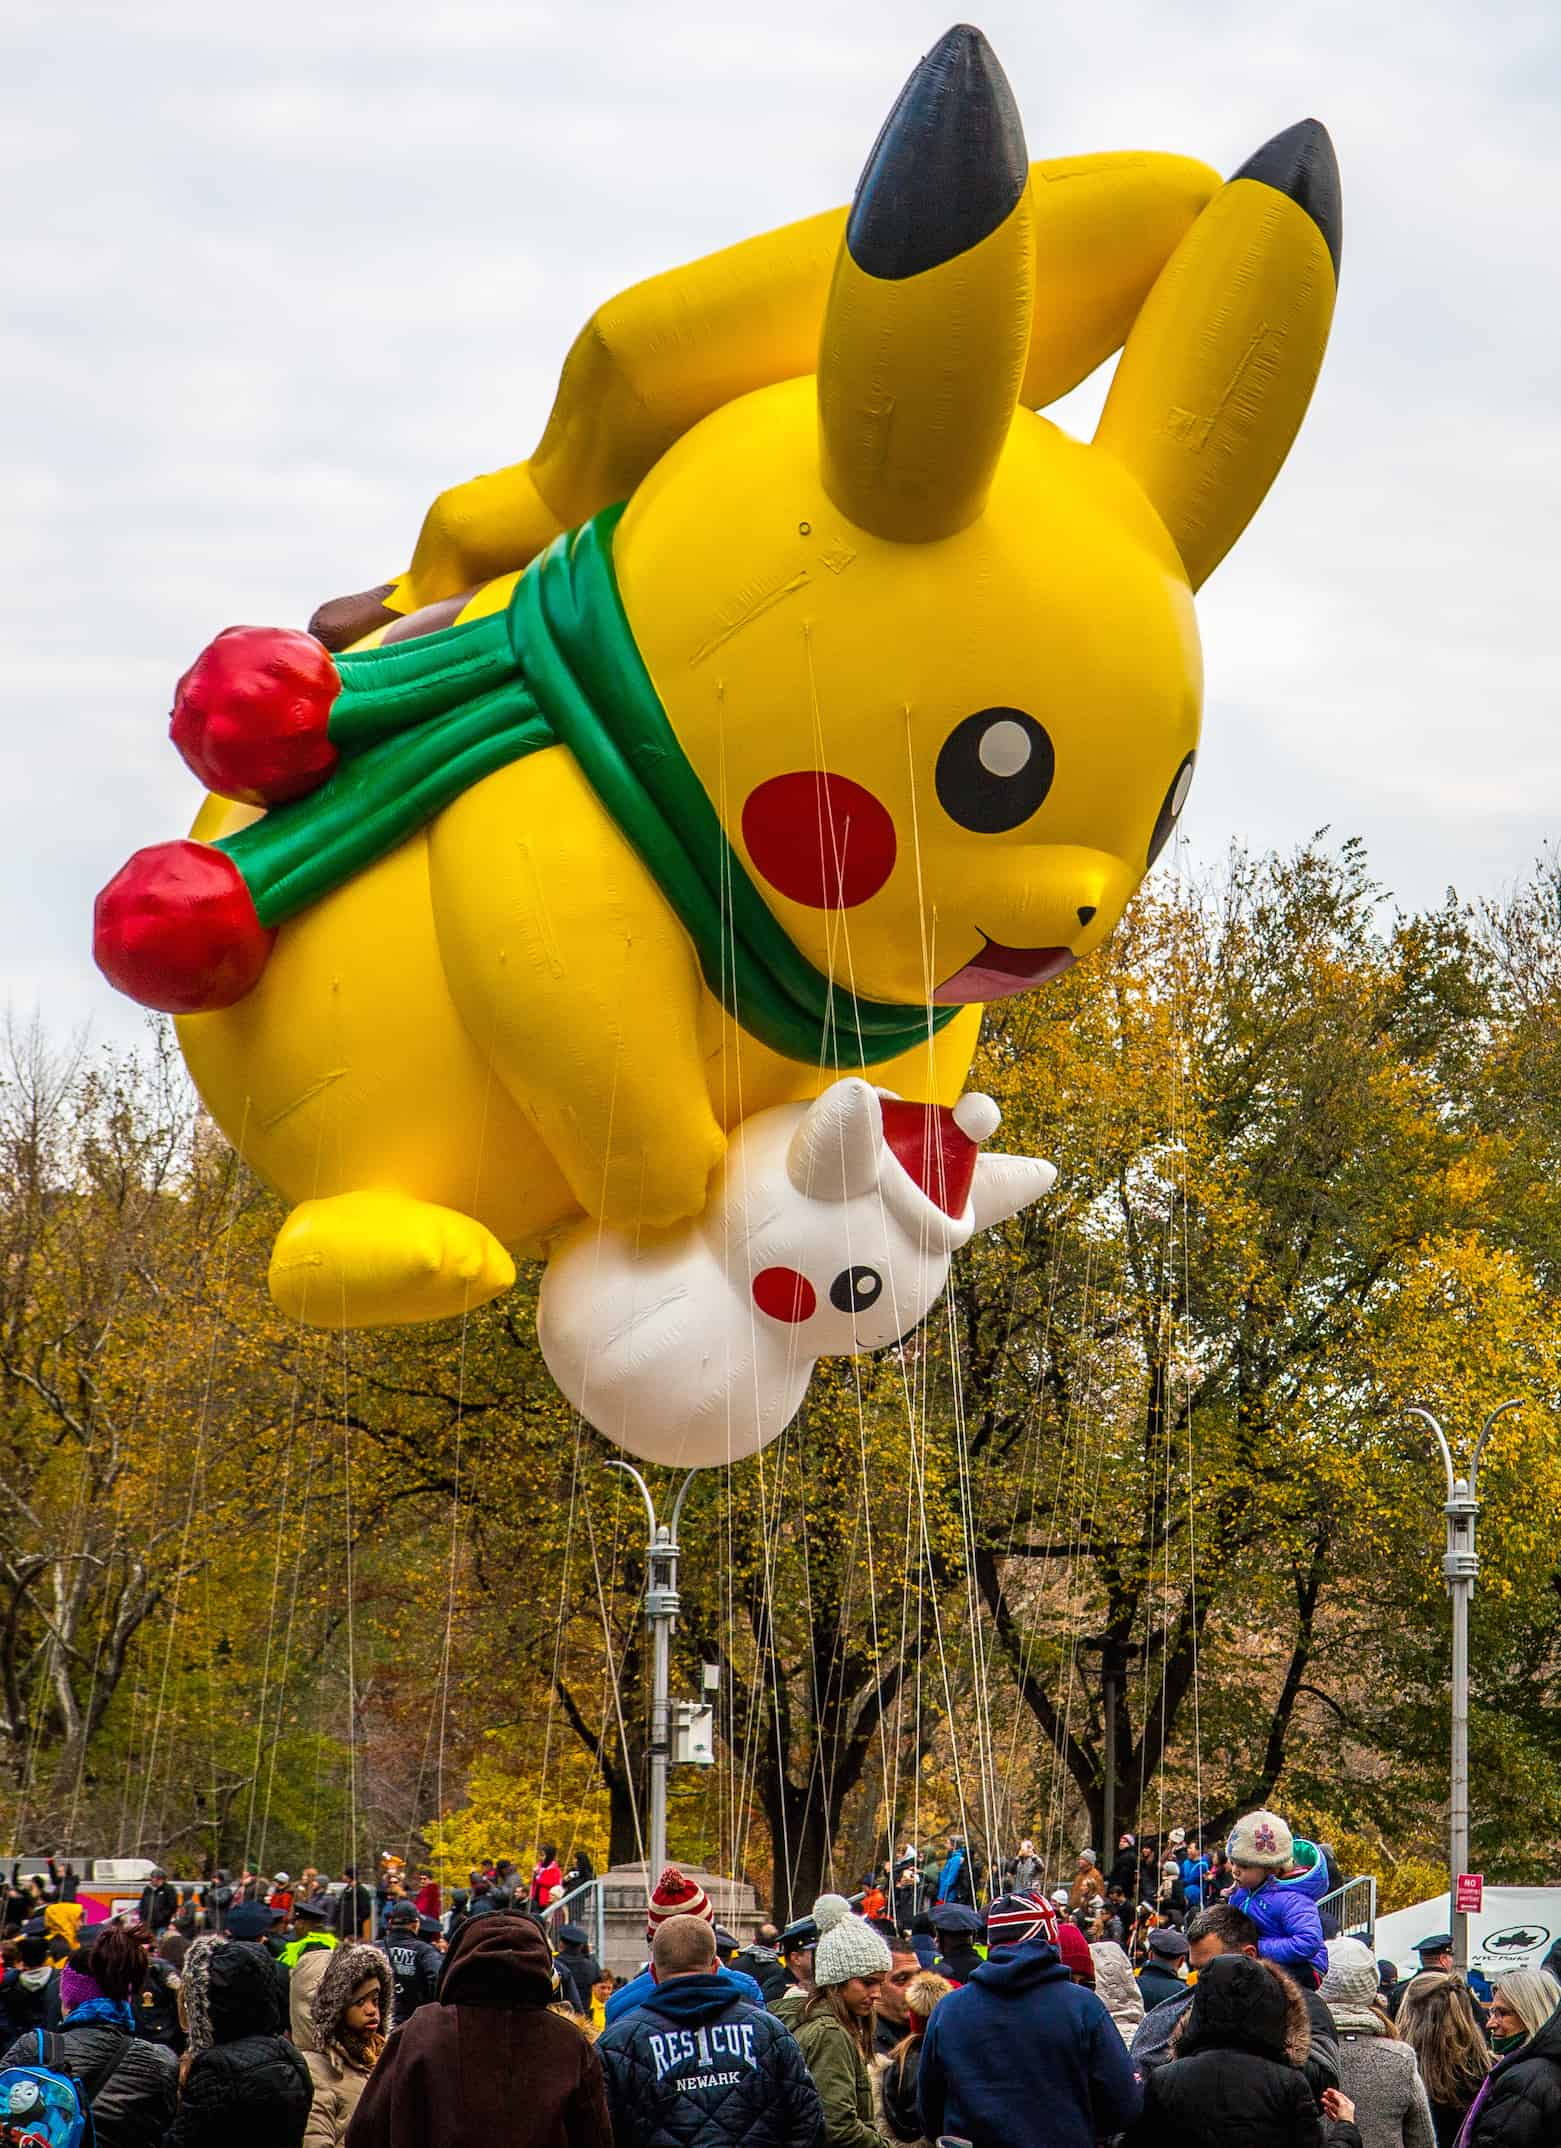 90th macy's thanksgiving day parade- Pikachu